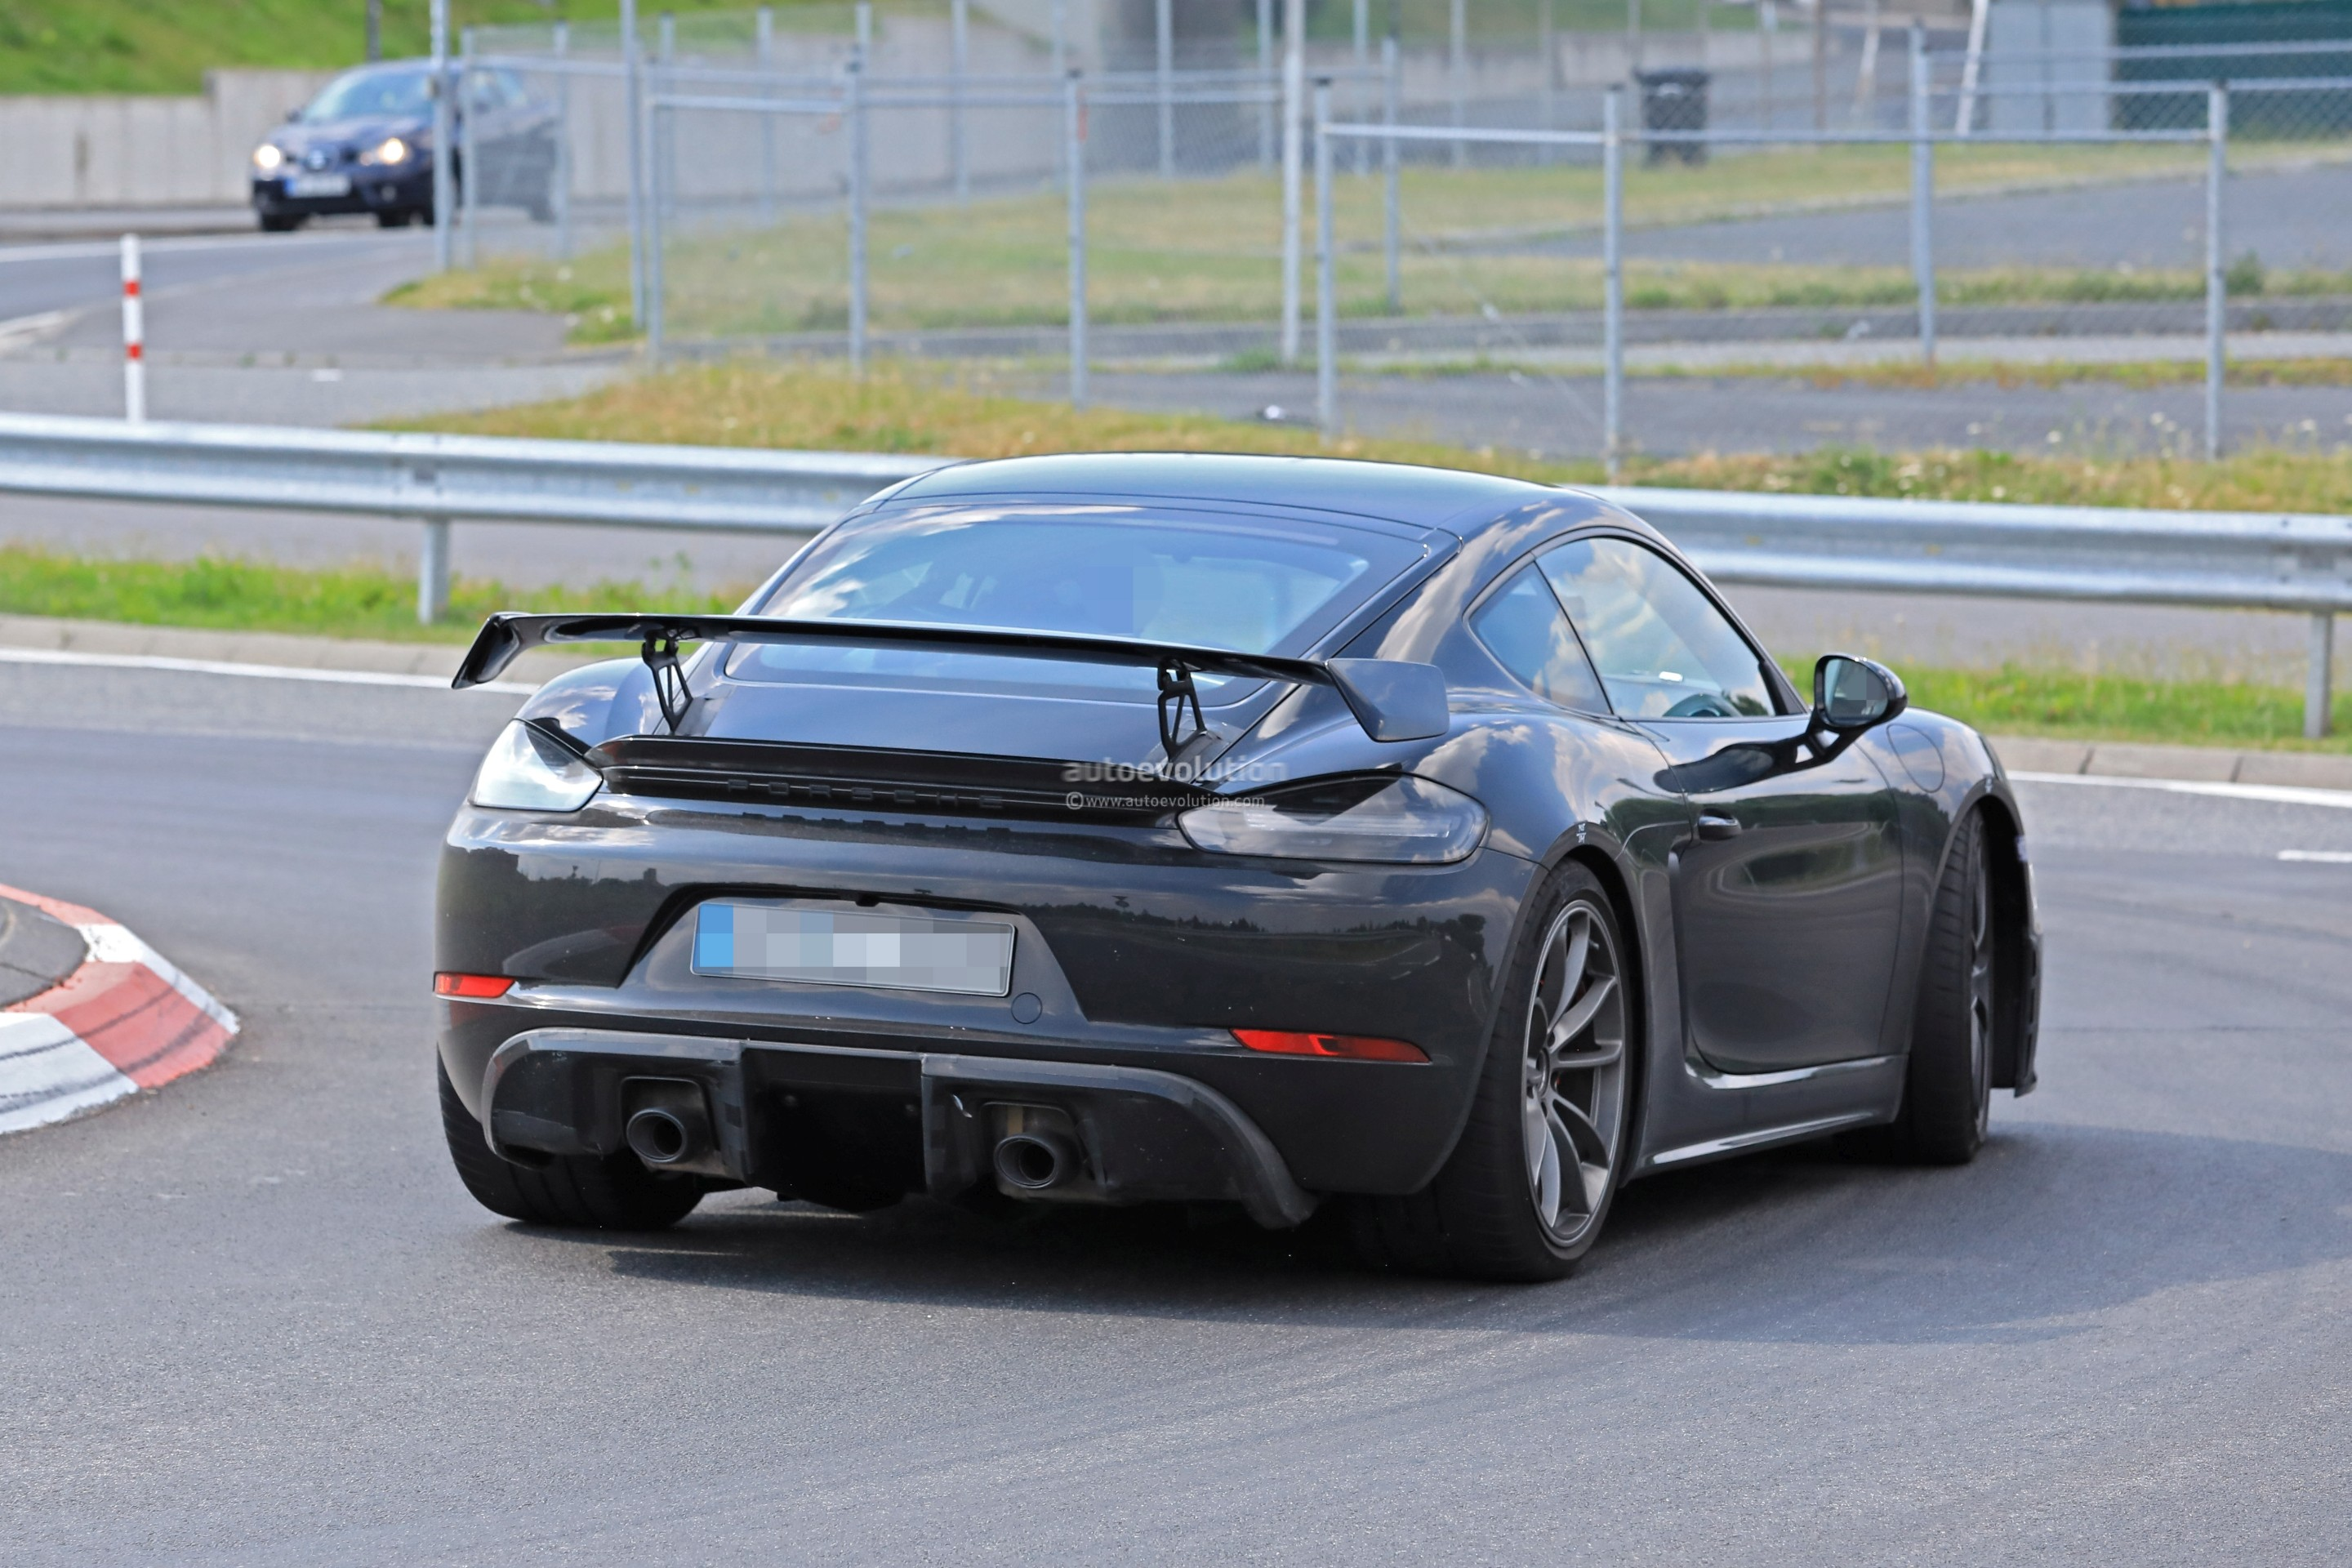 Porsche 718 Cayman Gt4 Spotted In Traffic Pdk Rumors Grow